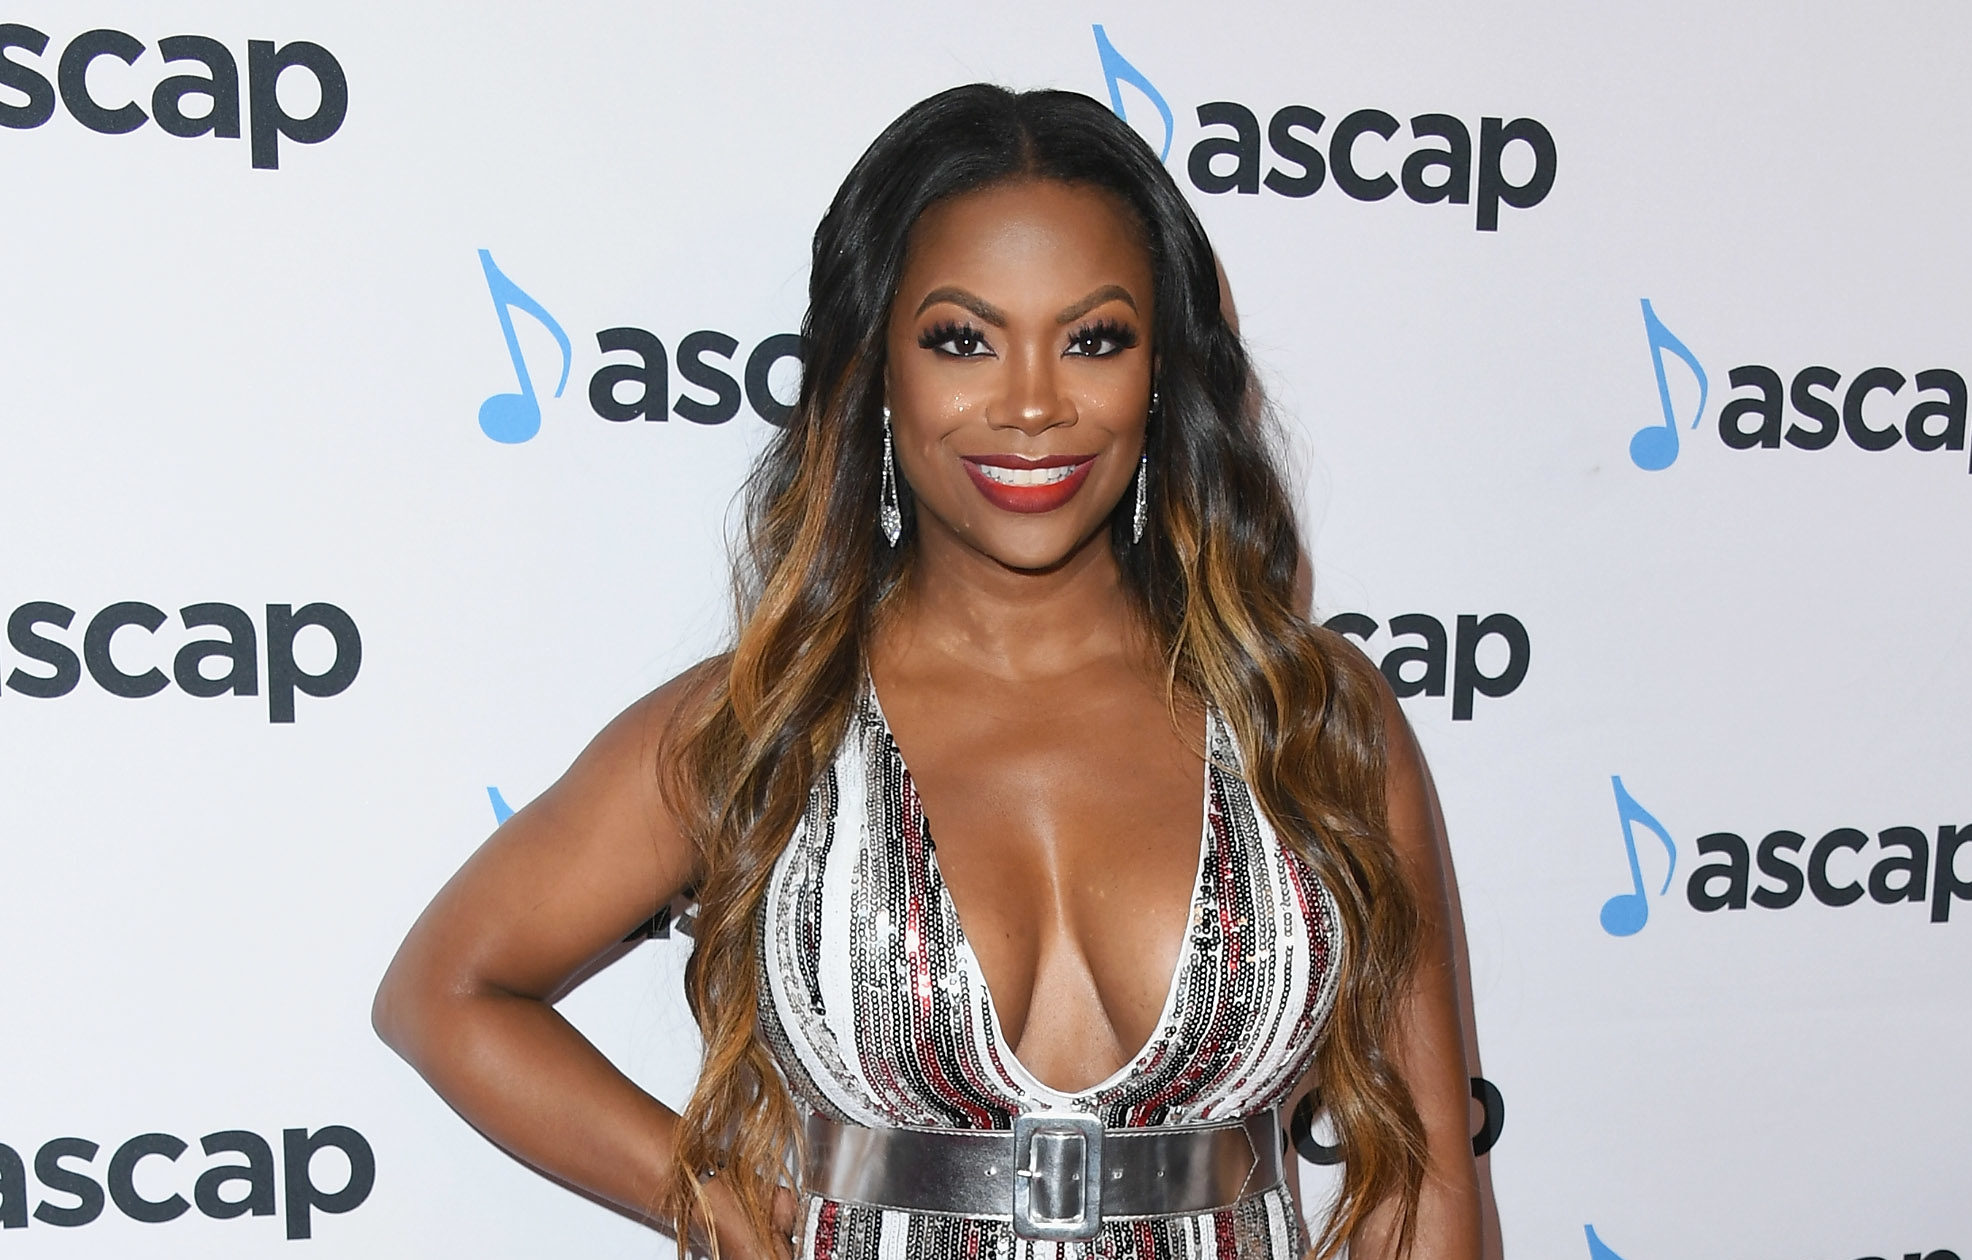 Kandi Burruss Is Enjoying A Little Sun During Her Work Trip – See Her Photo Here